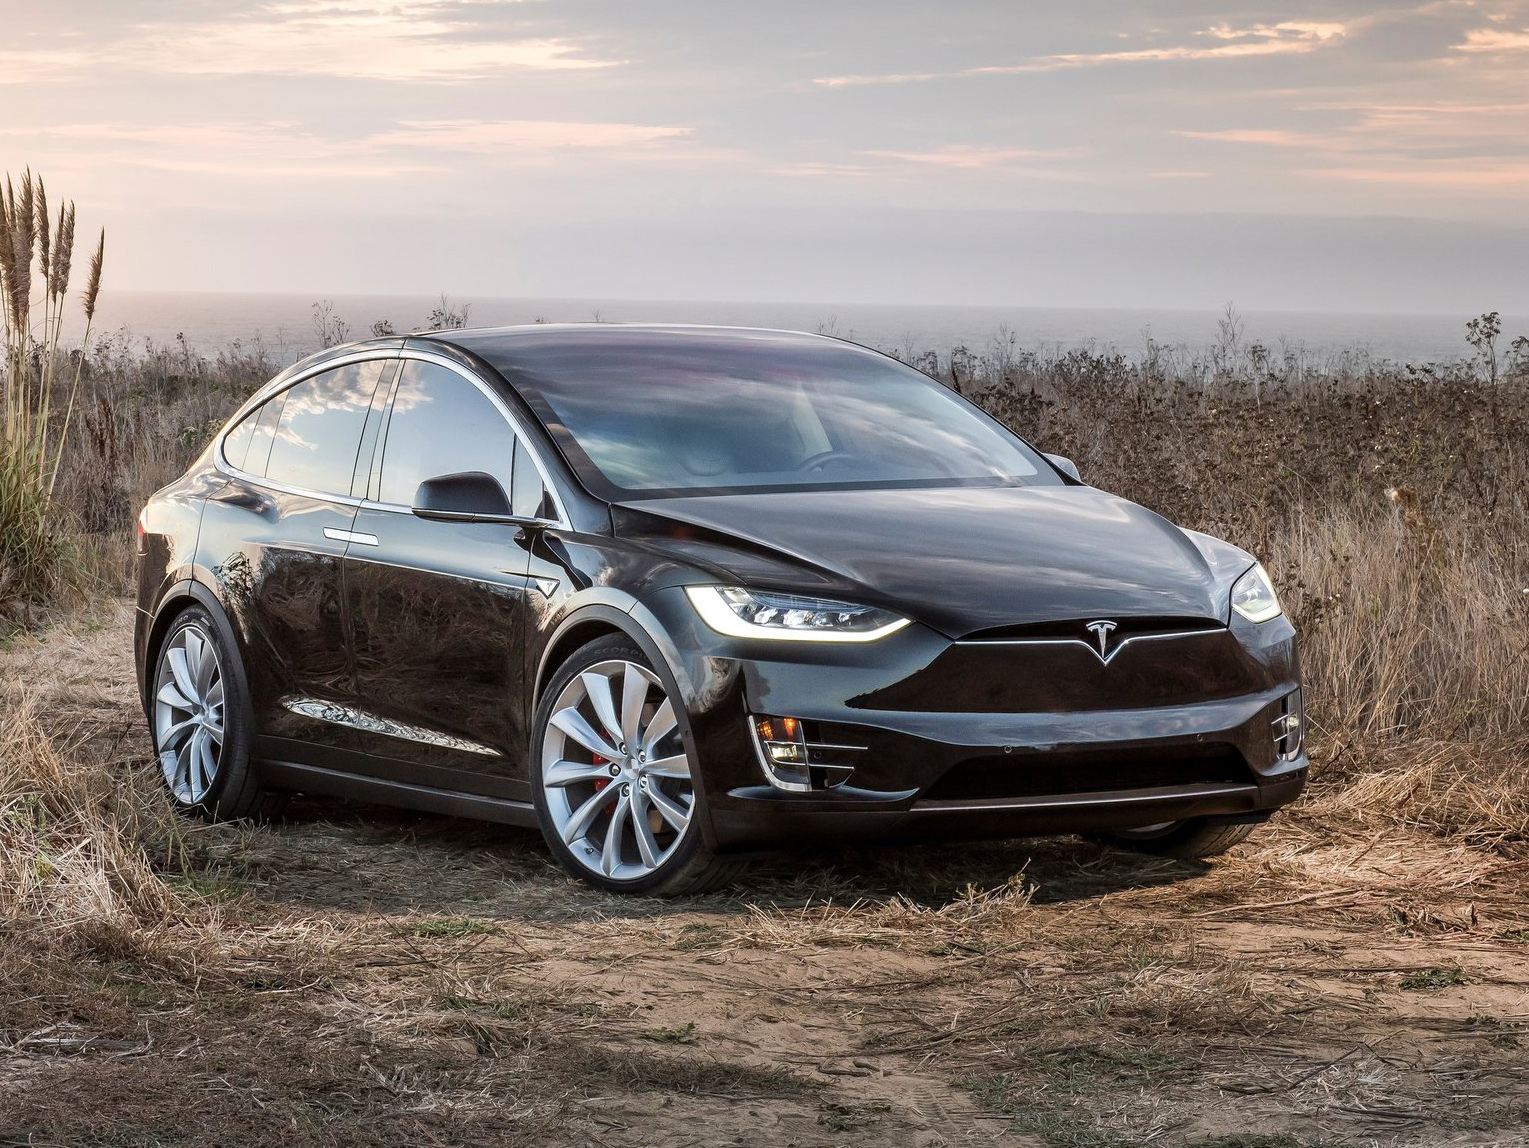 Tesla | Brisbane And Adelaide Stores Now Open In Australia - Model Y Compact SUV Due In 2020